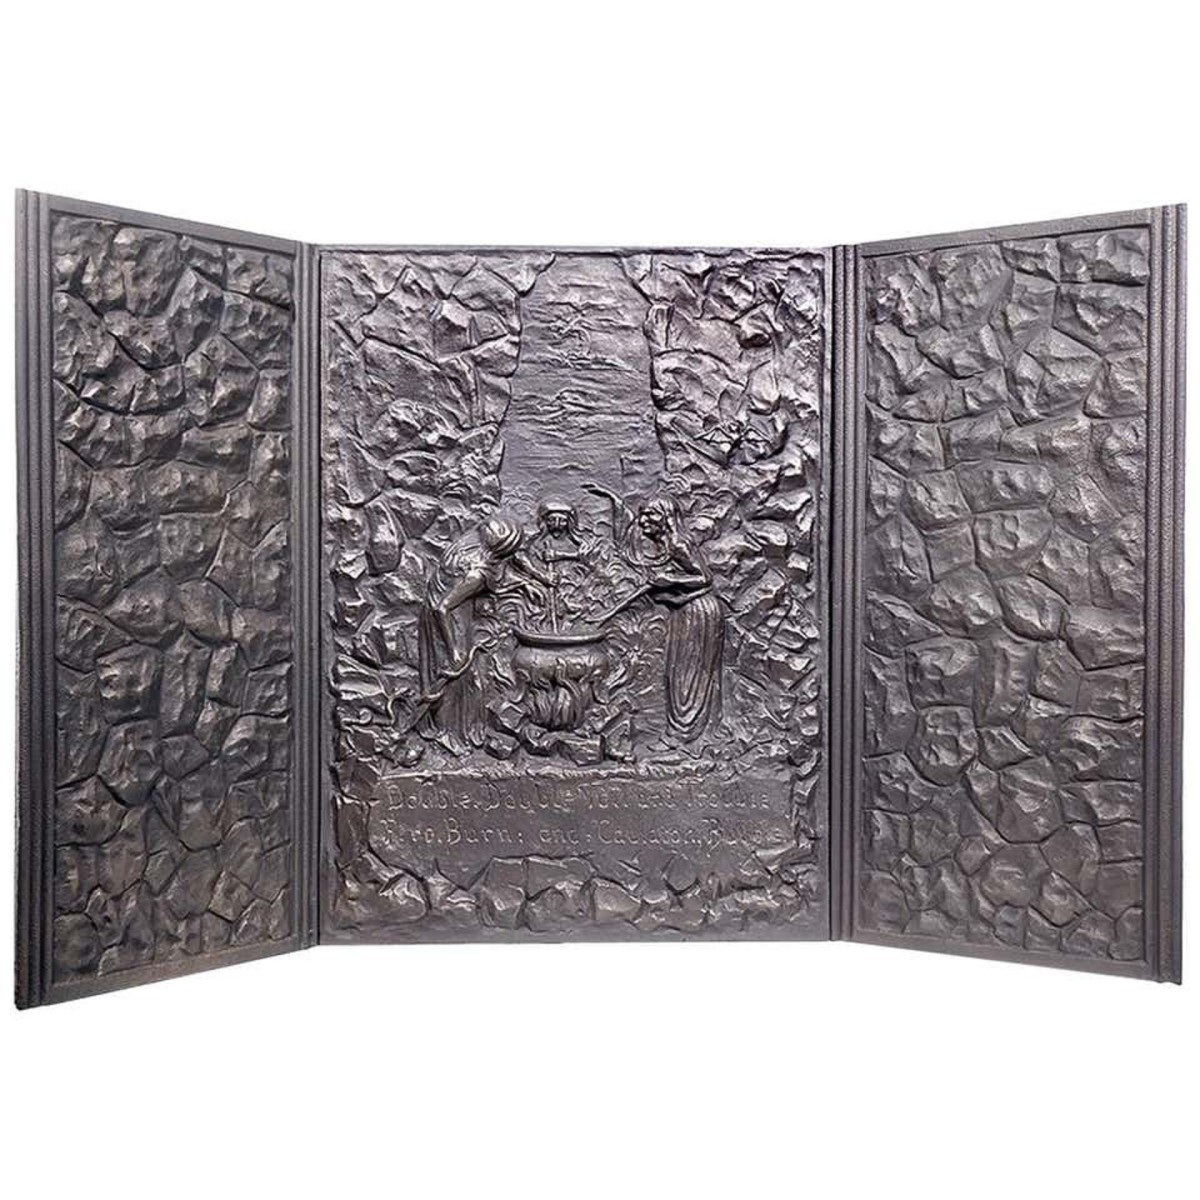 """This Shakespeare-inspired stove plate set  is rare and highly sought after. Manufactured by the  Abram Cox Stove Company of Philadelphia and Chicago in the 1890s,  it features the three witches from """"Macbeth"""" with the verse,  """"Double, double, toil and trouble, fire burn and cauldron bubble"""";  29-1/2"""" x 51-1/2""""; $850."""